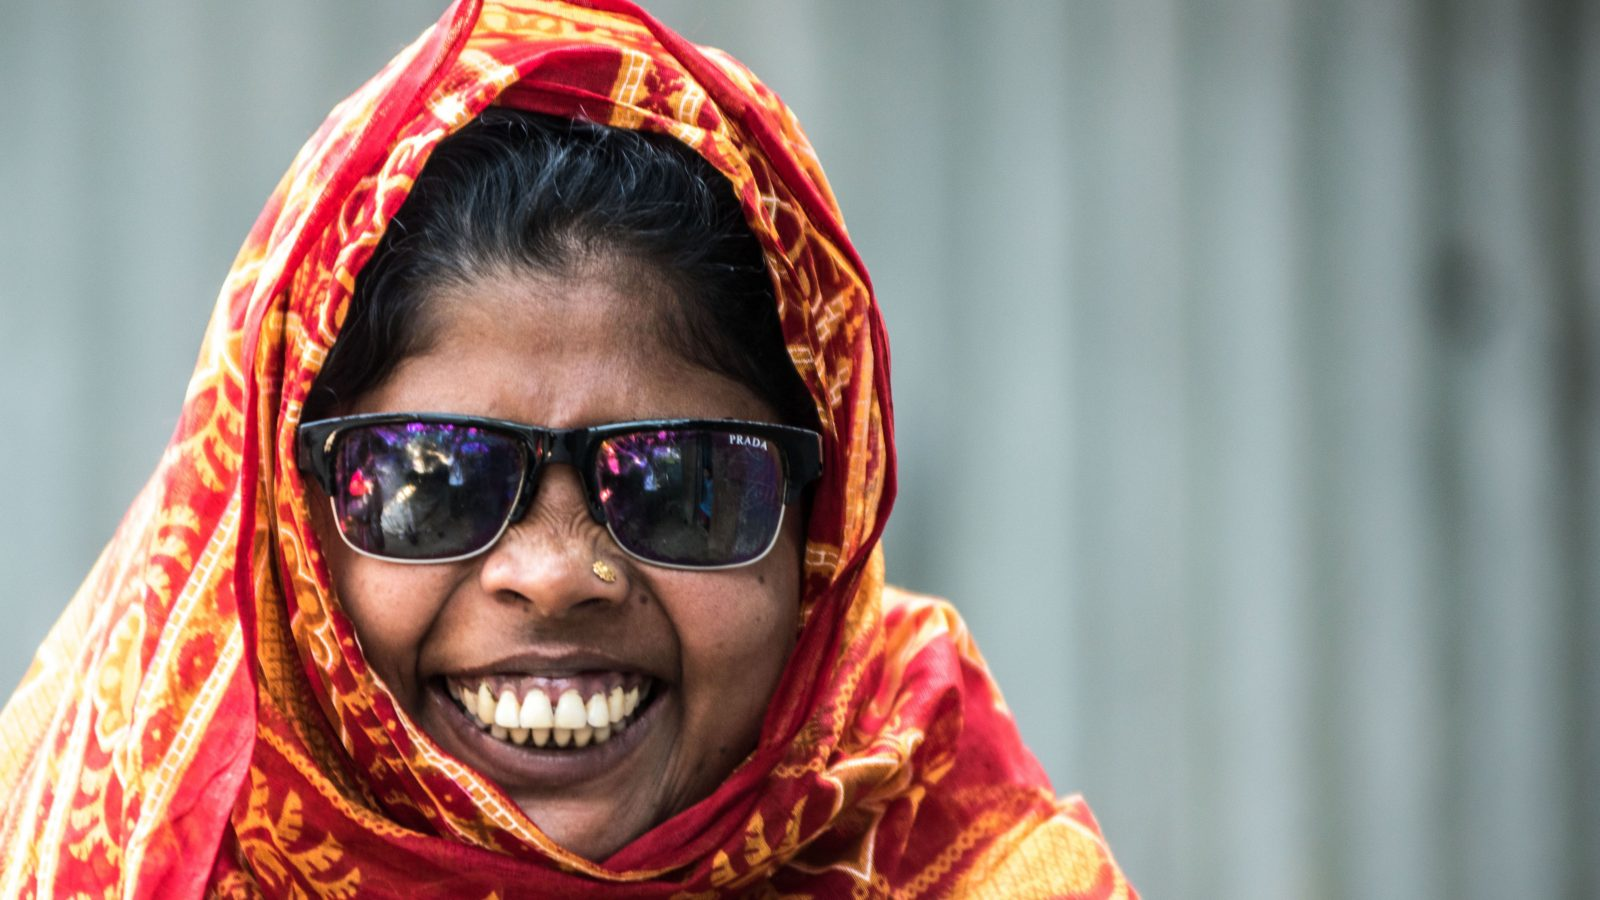 Smiling woman, who is a disability rights activist, wearing sunglasses and orange headscarf.